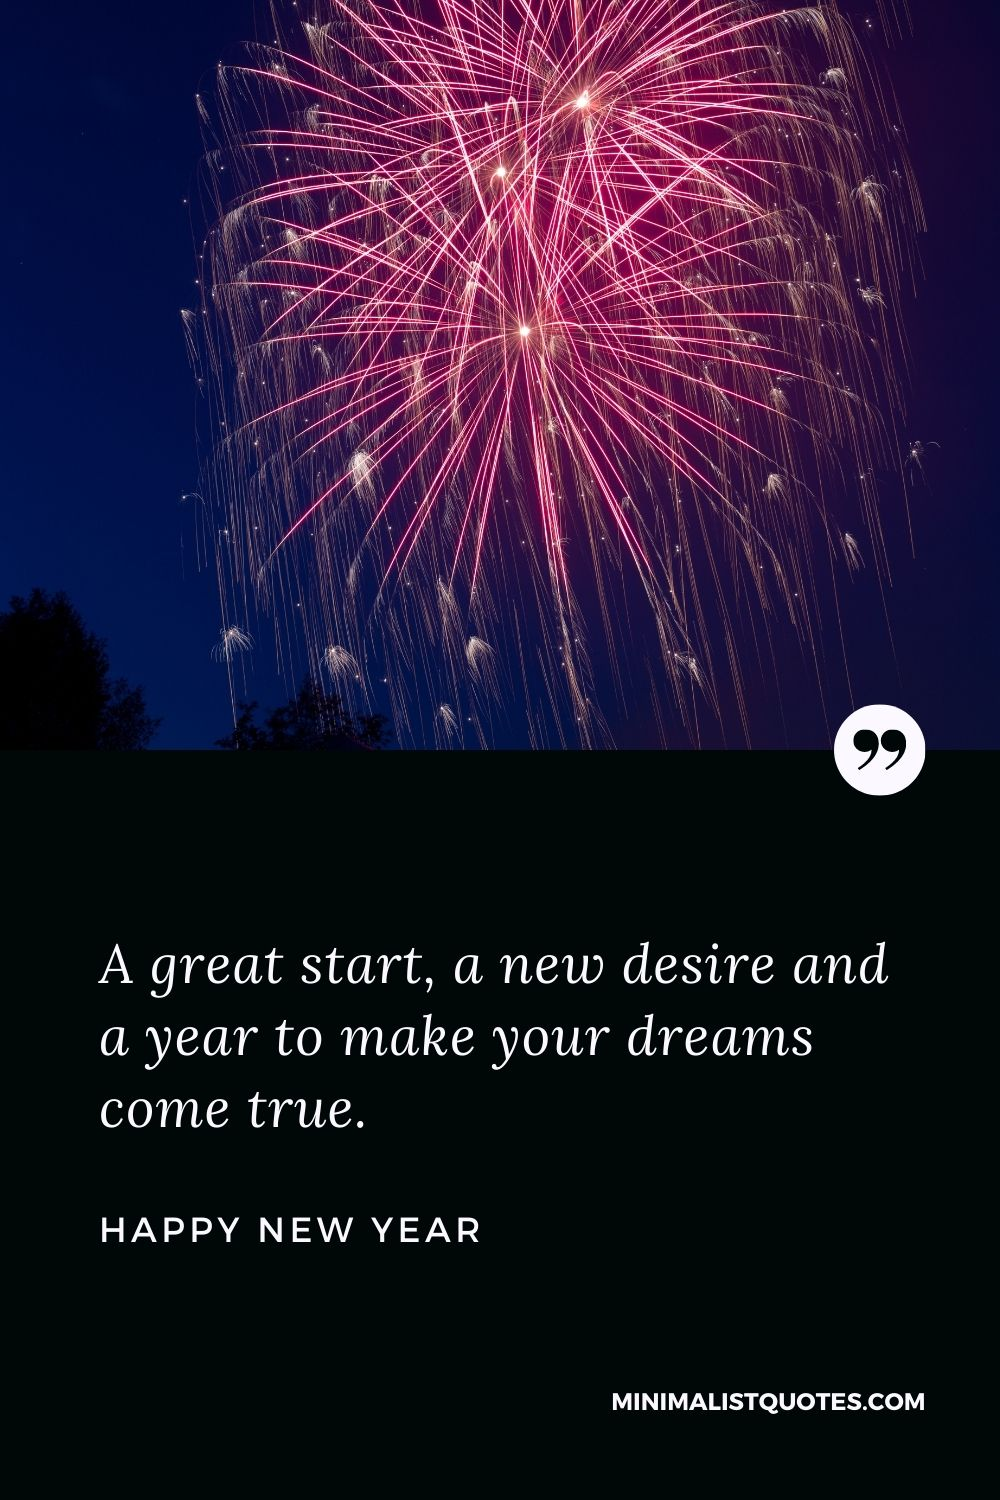 New Year Wish - A great start, a new desire and a year to make your dreams come true.